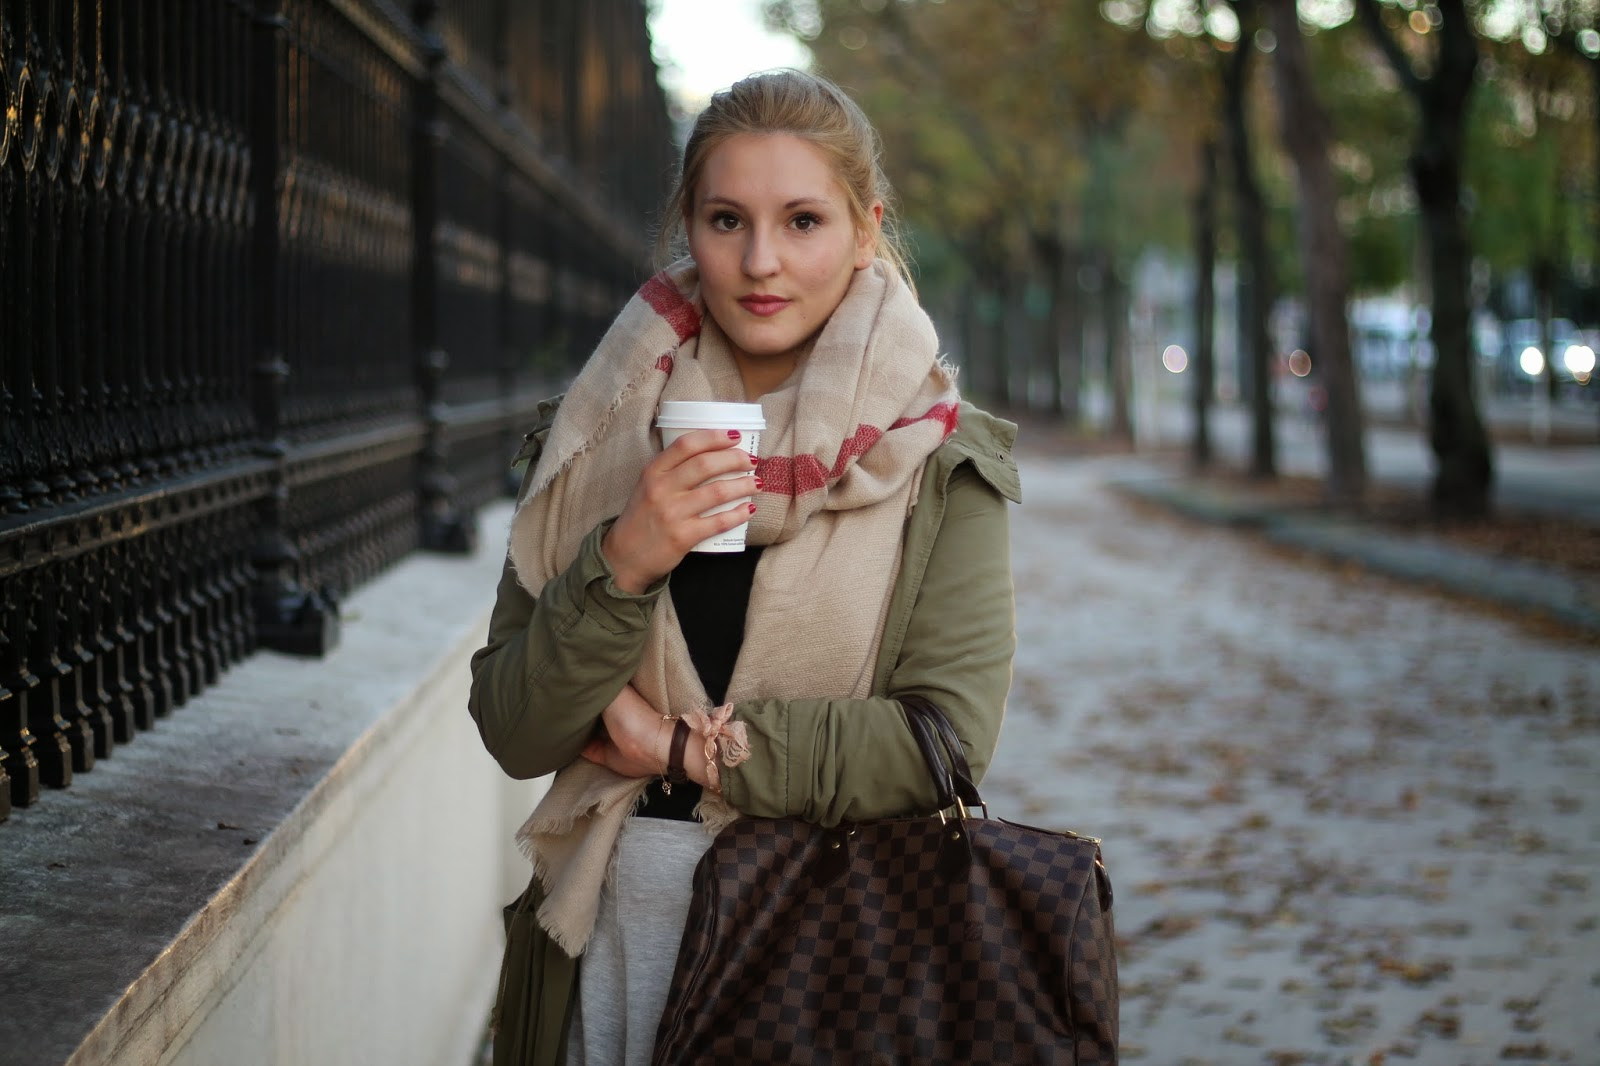 Fashionblogger Austria / Österreich / Deutsch / German / Kärnten / Carinthia / Klagenfurt / Köttmannsdorf / Spring Look / Classy / Edgy / Autumn / Autumn Style 2014 / Autumn Look / Fashionista Look / Olive Parka H&M / Zara Scarf Zara Schal Autumn Winter 2014 2015 / Louis Vuitton Damier Ebene Speedy 35 / Asos Monki Skirt Rock Grey Grau / Boots Chelsea Boots Primark Schwarz Black / Daniel Wellington Watch /